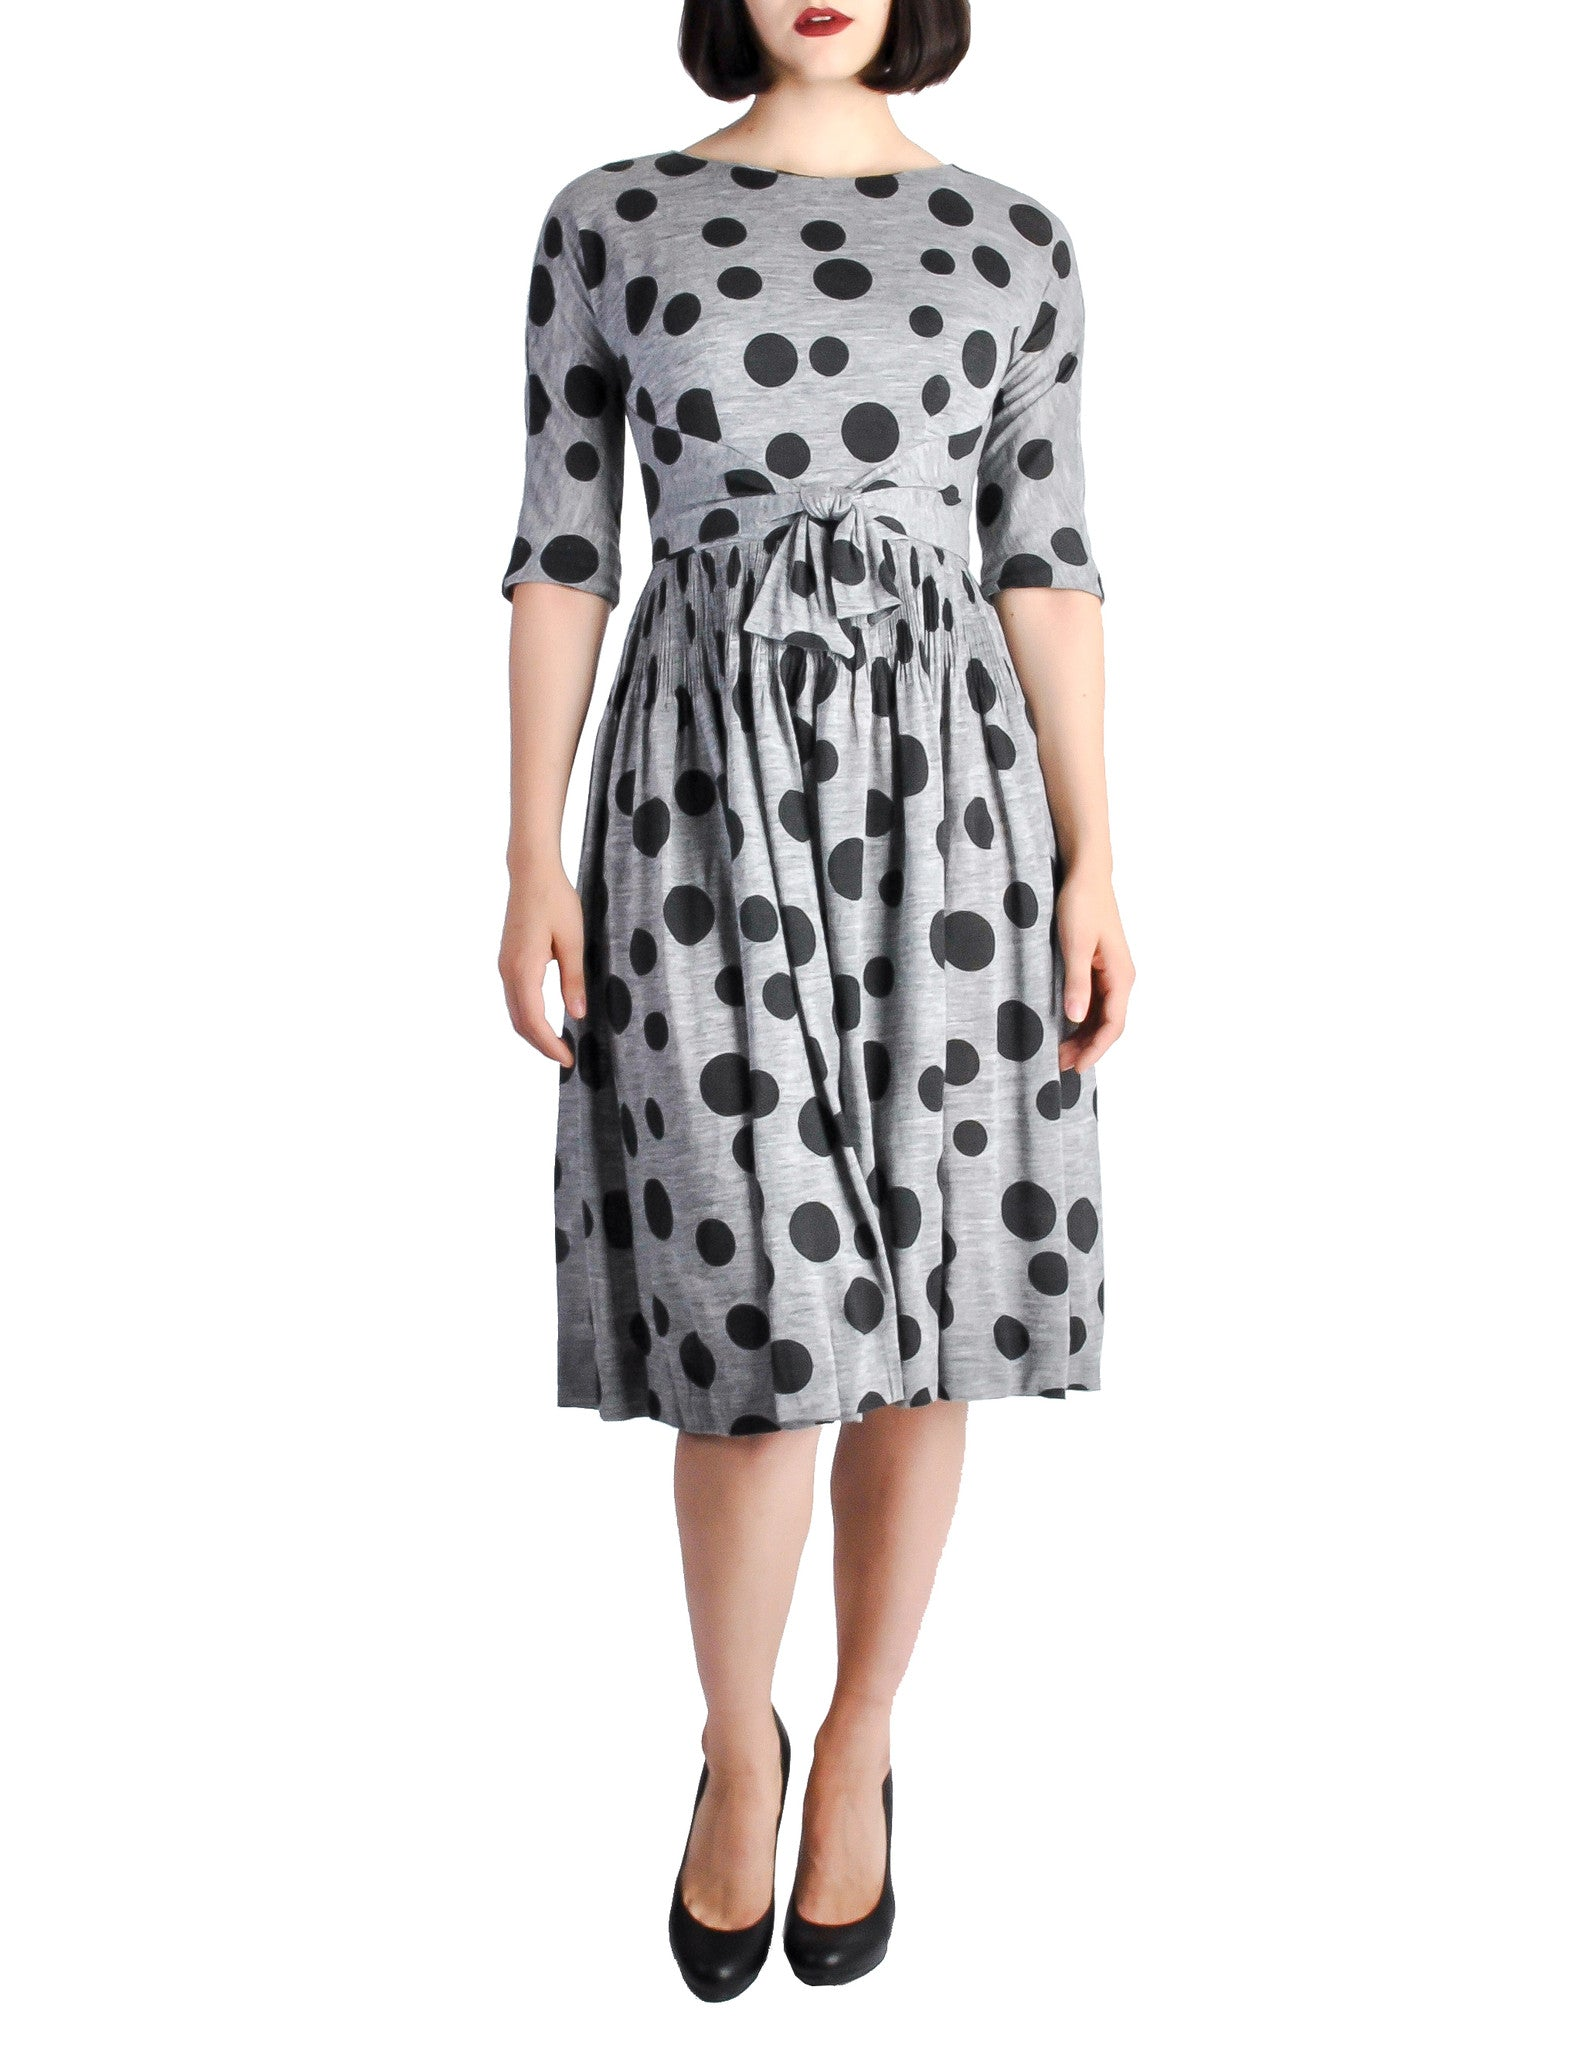 Jerry Gilden Vintage 1950s Heather Grey & Black Polka Dot Dress - Amarcord Vintage Fashion  - 1